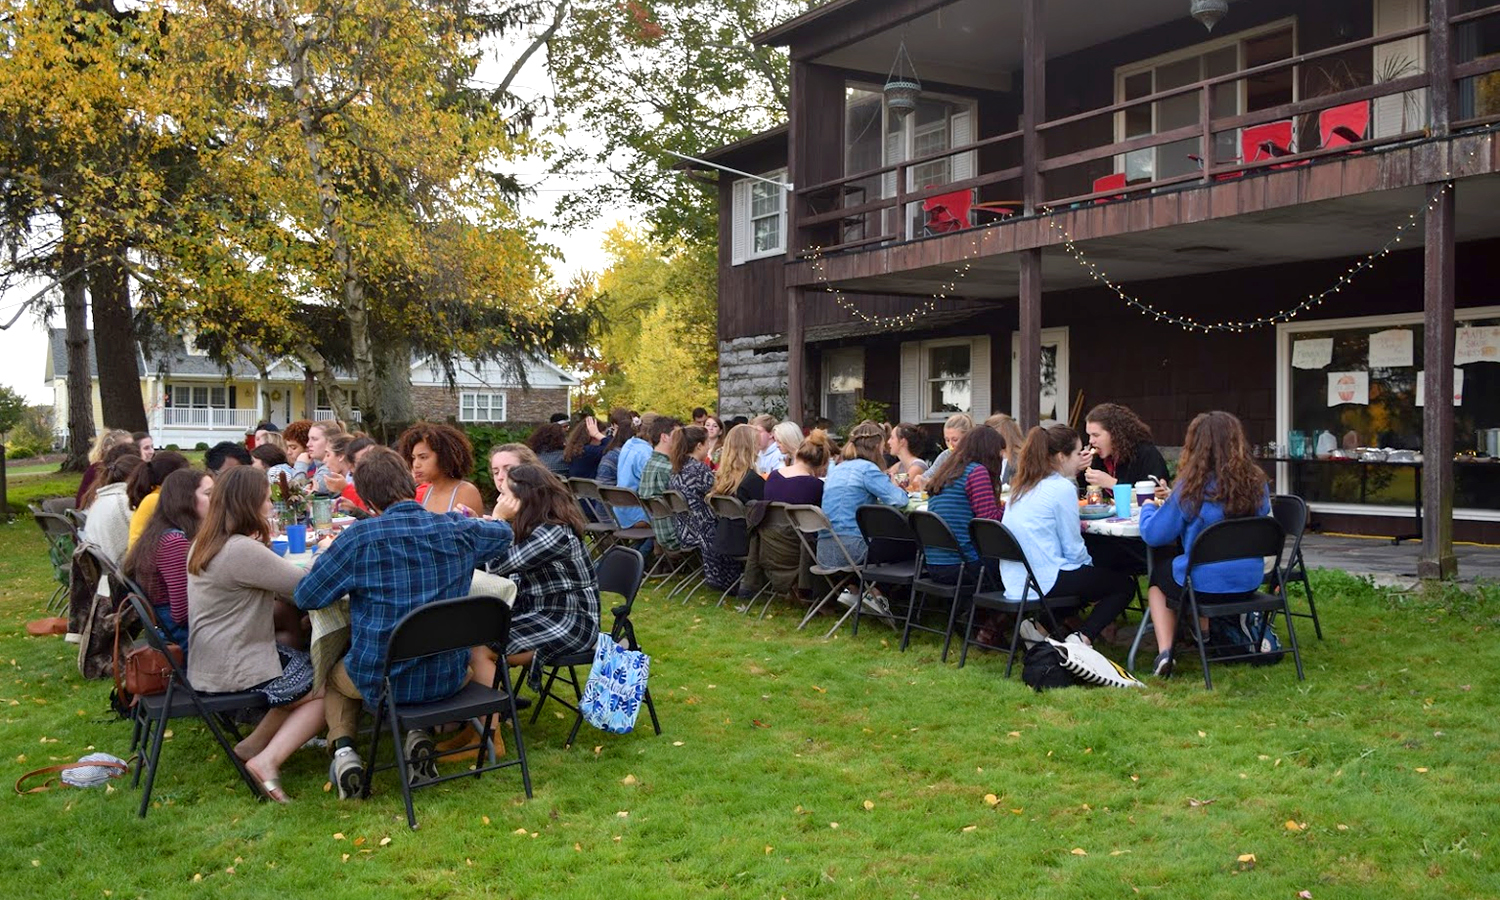 Students, faculty and staff gather for the Harvest Dinner event at the HWS Fribolin Farm on Sunday. The dinner featured local foods and live music in celebration of HWS Food Week.